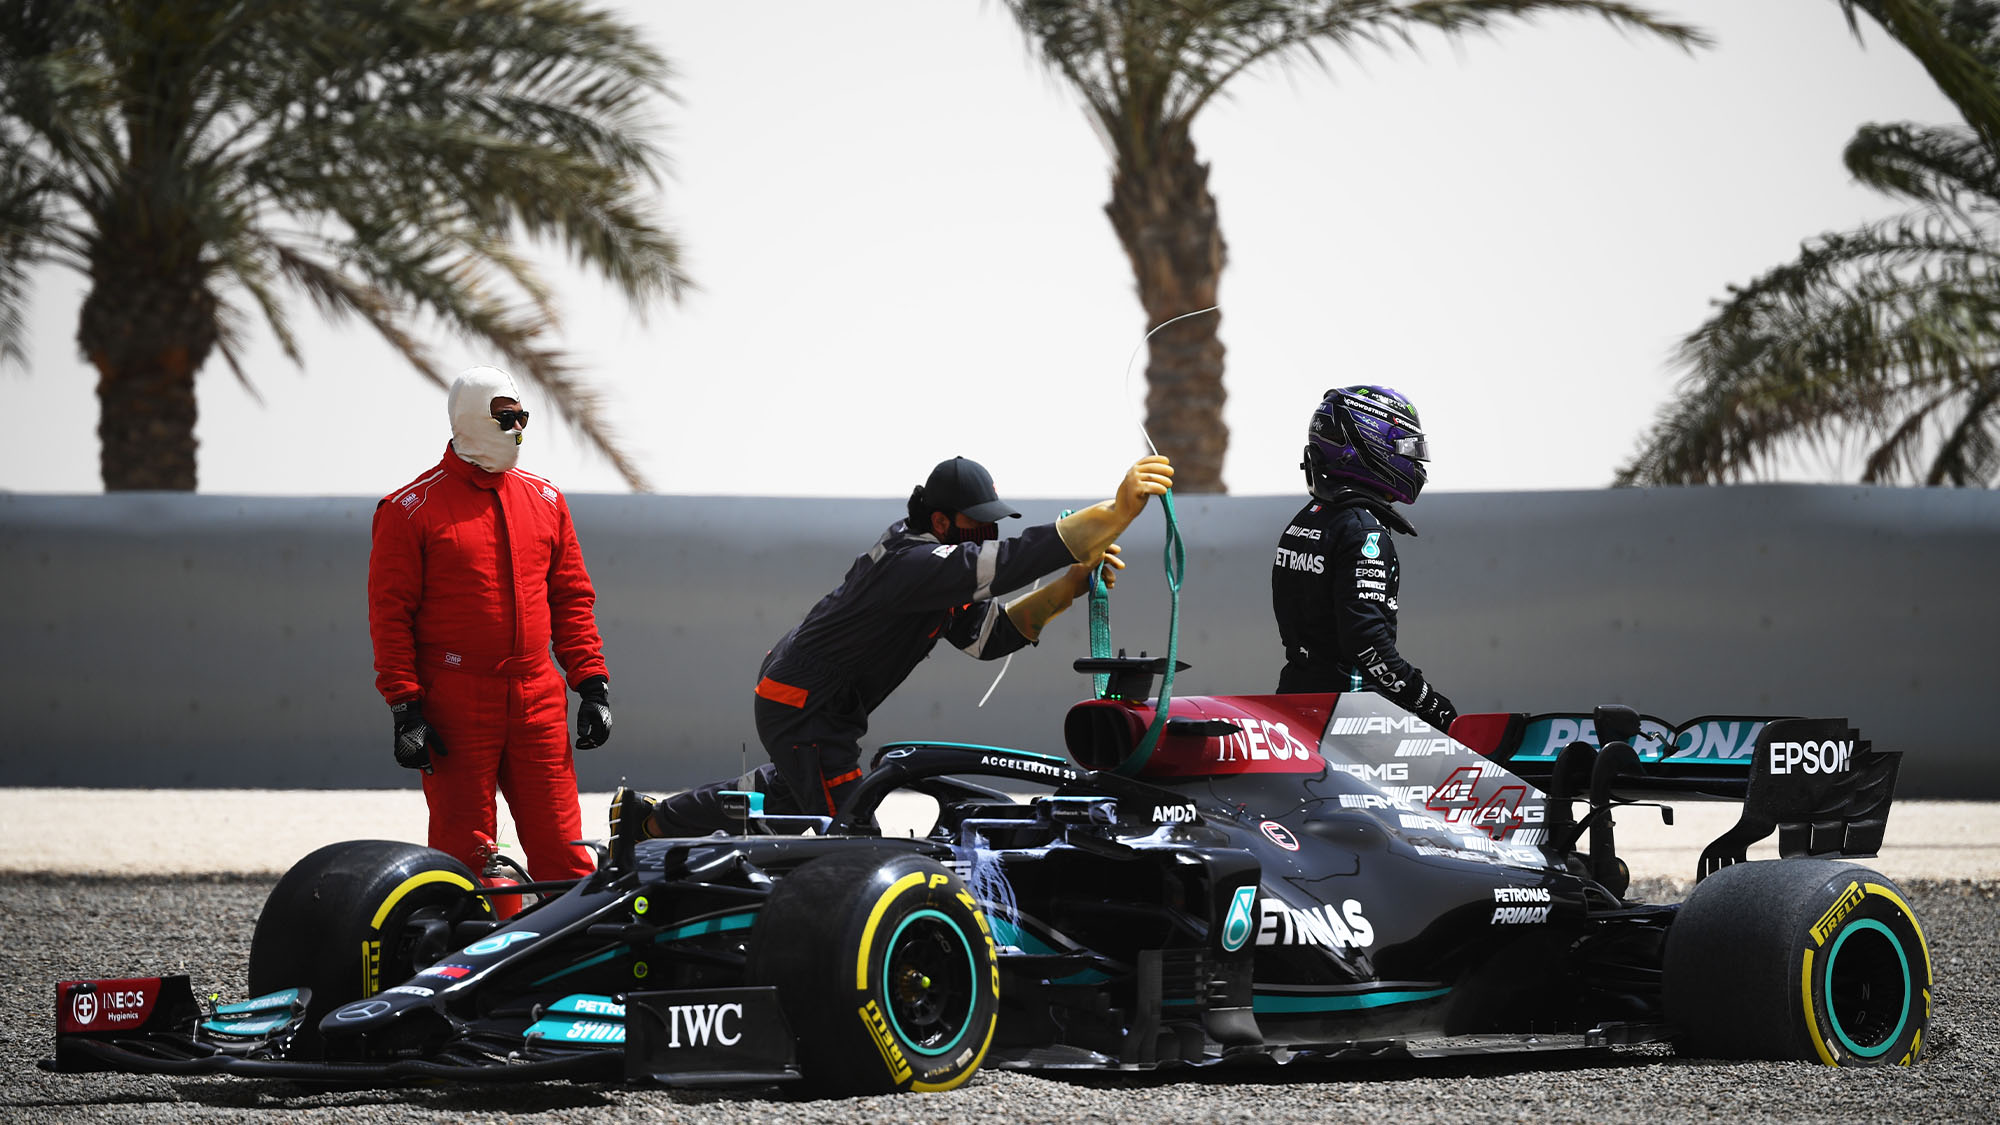 BAHRAIN, BAHRAIN - MARCH 13: Lewis Hamilton of Great Britain and Mercedes GP looks dejected after stopping on track during Day Two of F1 Testing at Bahrain International Circuit on March 13, 2021 in Bahrain, Bahrain. (Photo by Clive Mason/Getty Images)